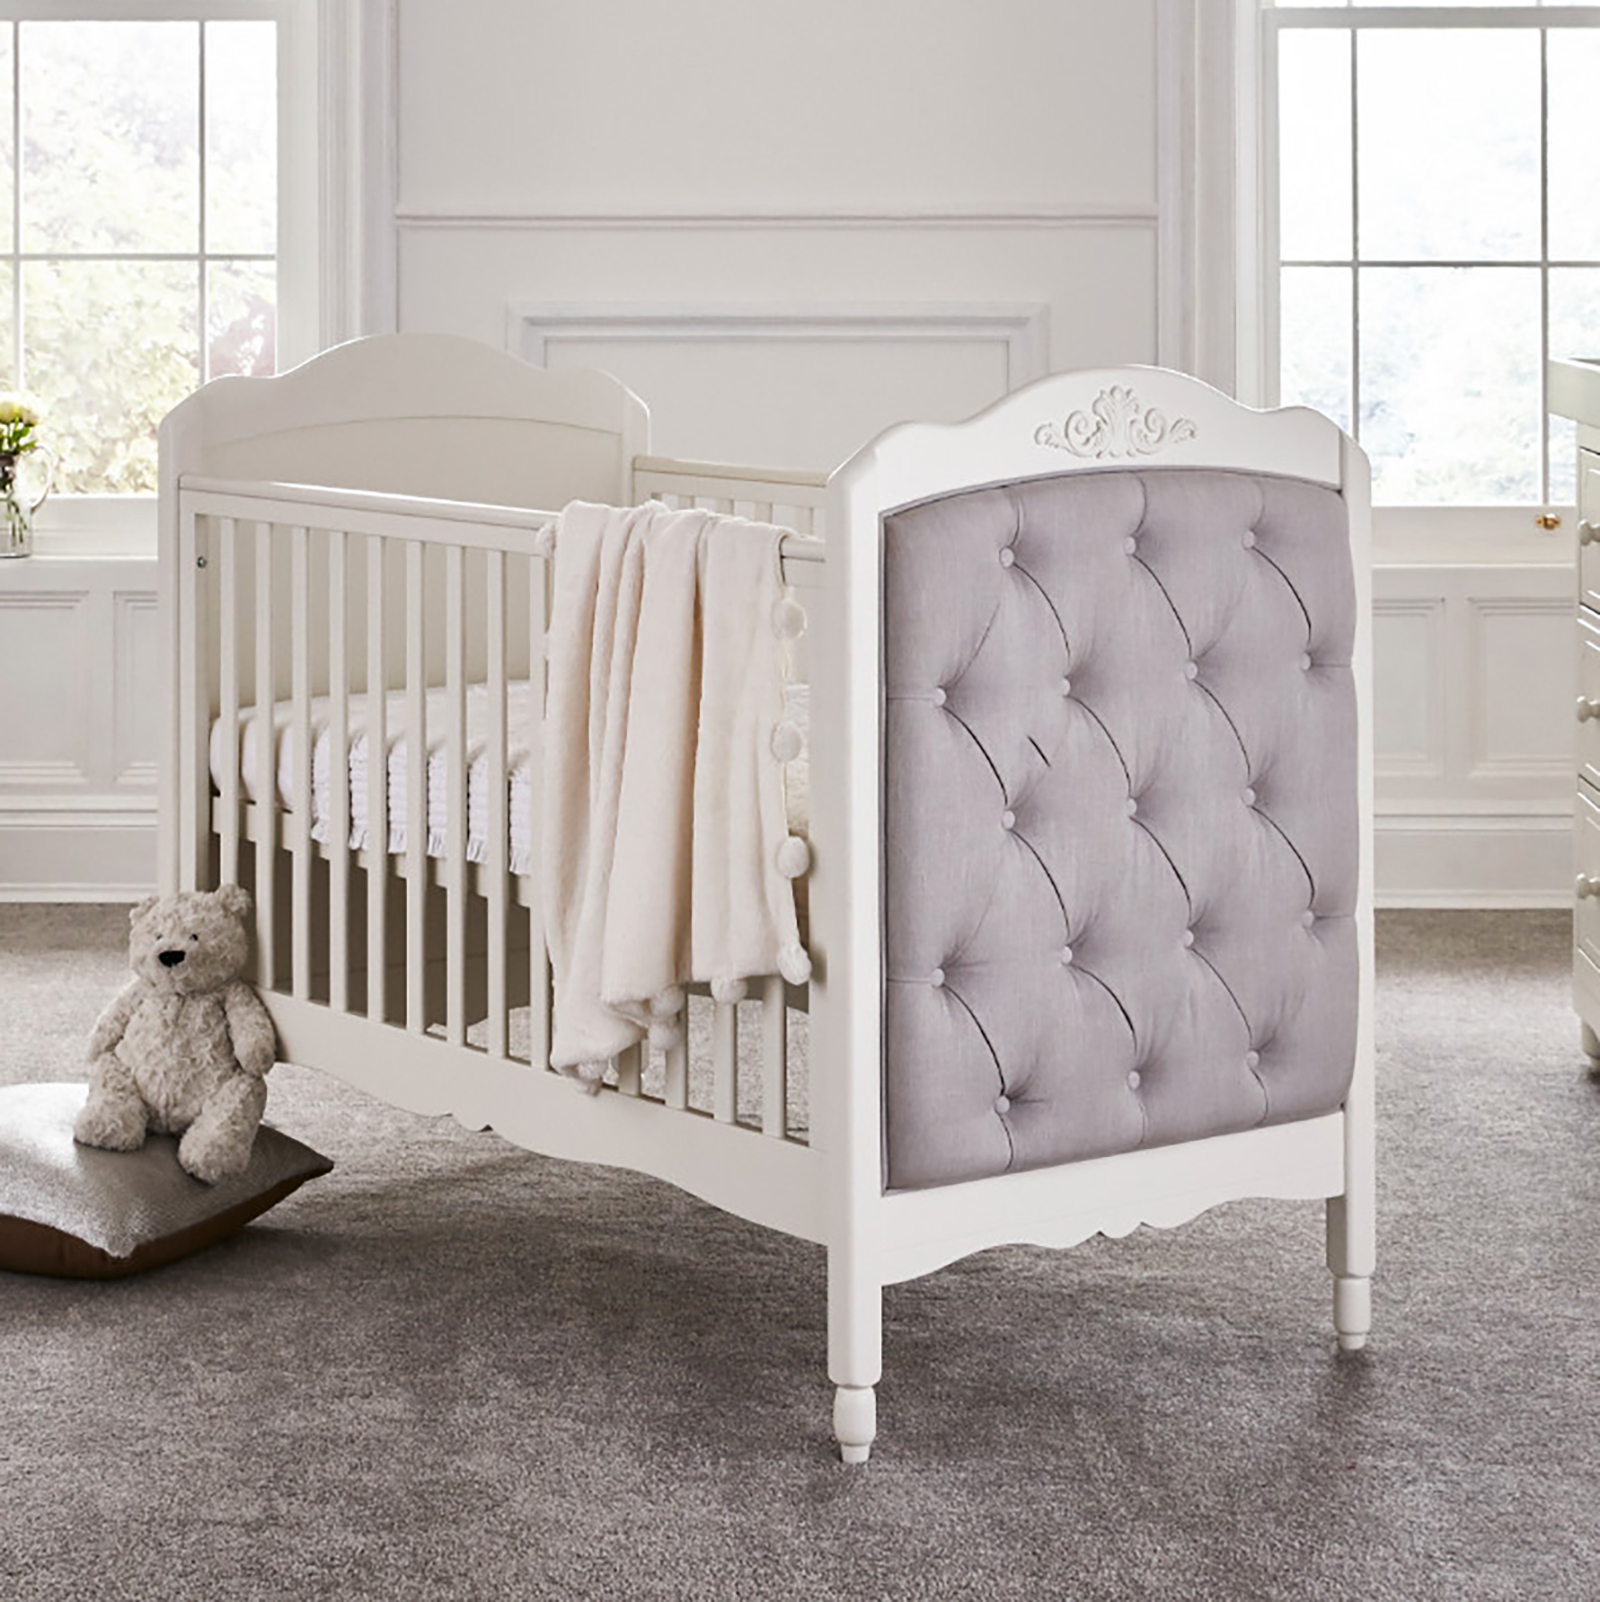 Mee-Go Epernay Cot Bed With Deluxe Maxi Air Cool Mattress - White